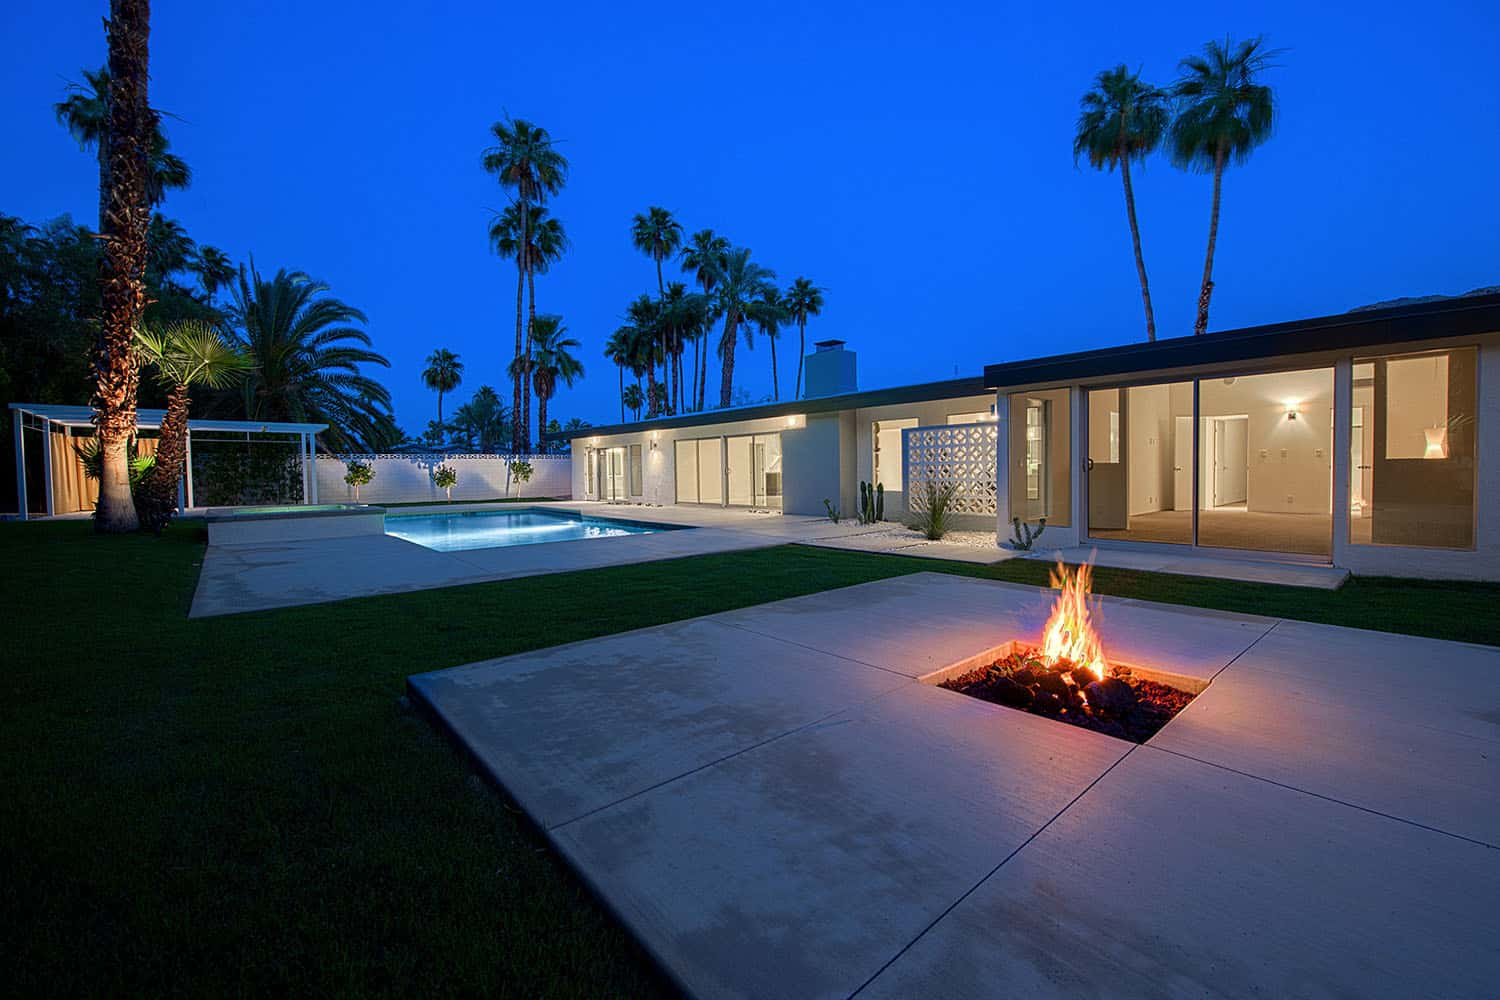 midcentury-modern-ranch-home-patio